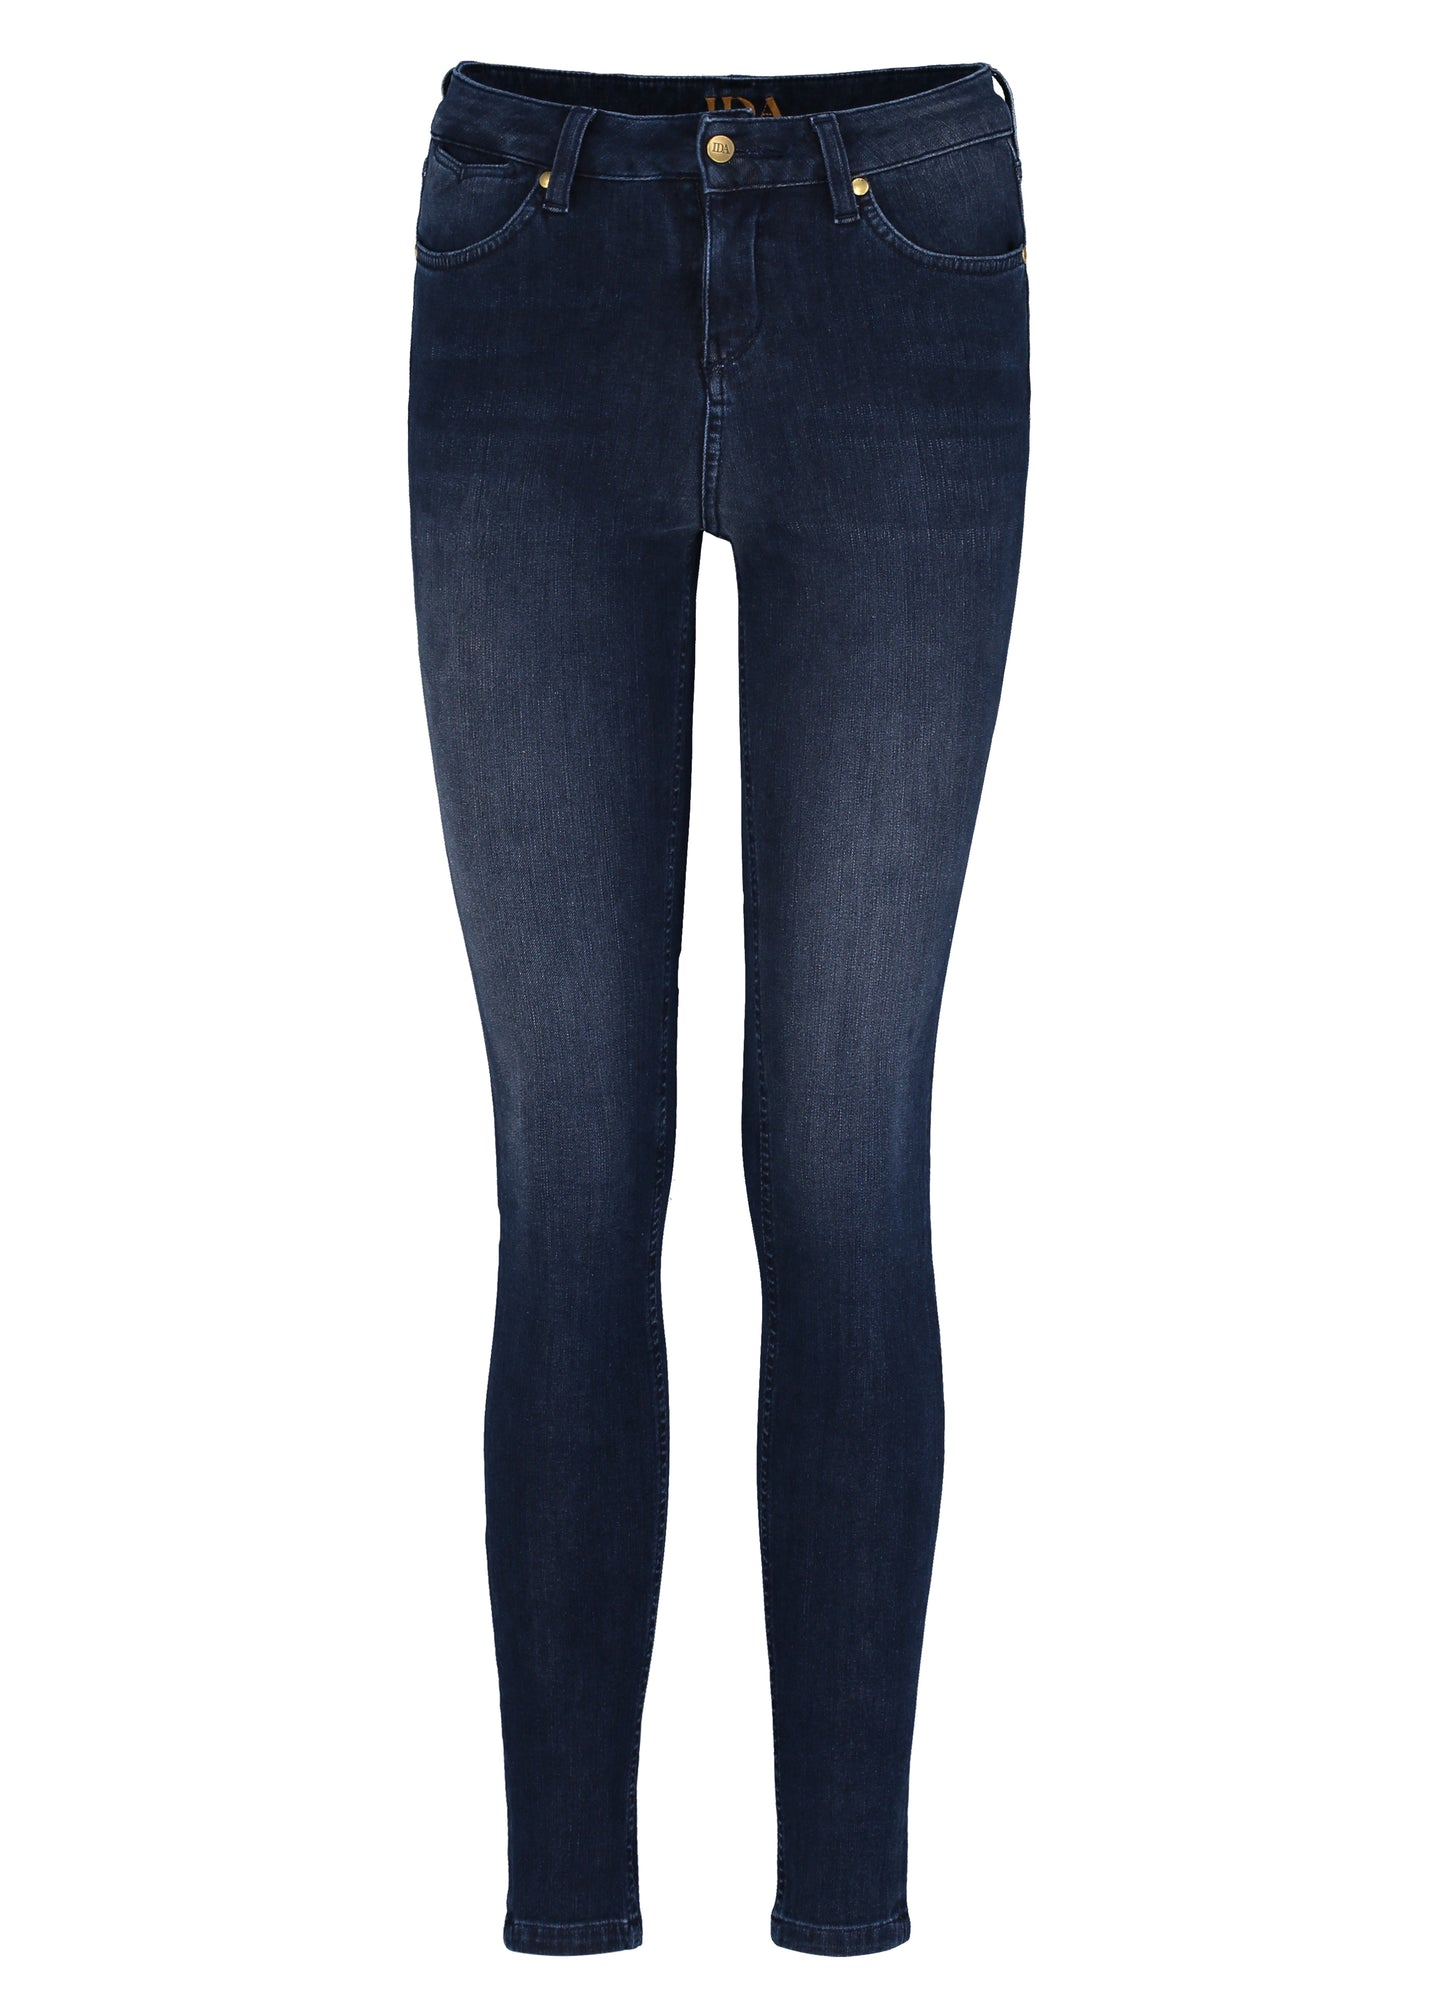 Rizzo High Top Ankle Skinny Jeans - Big Skies